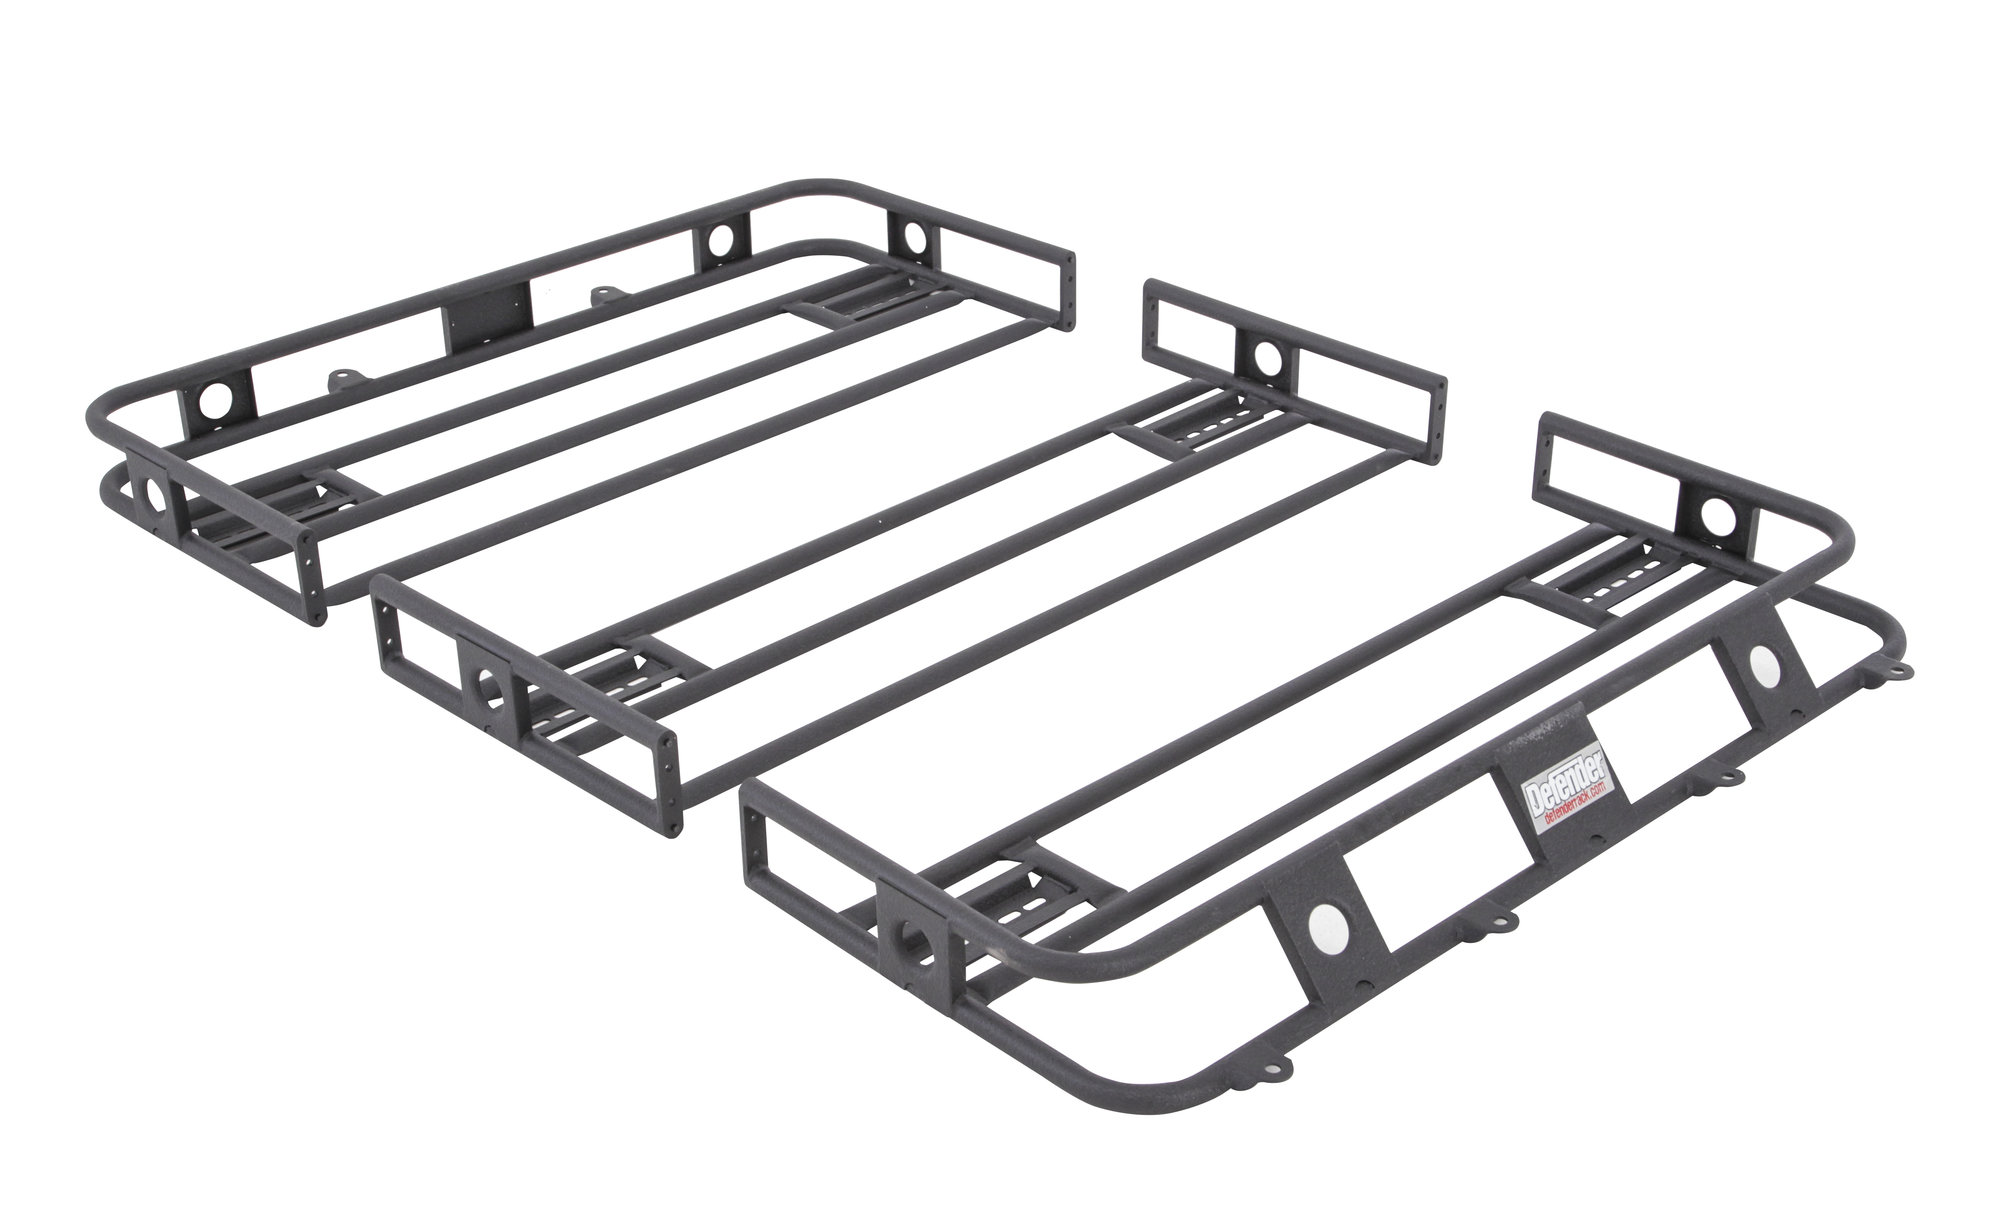 Smittybilt Defender Roof Rack For 90 01 Jeep Cherokee Xj With Factory Roof Rack Mount